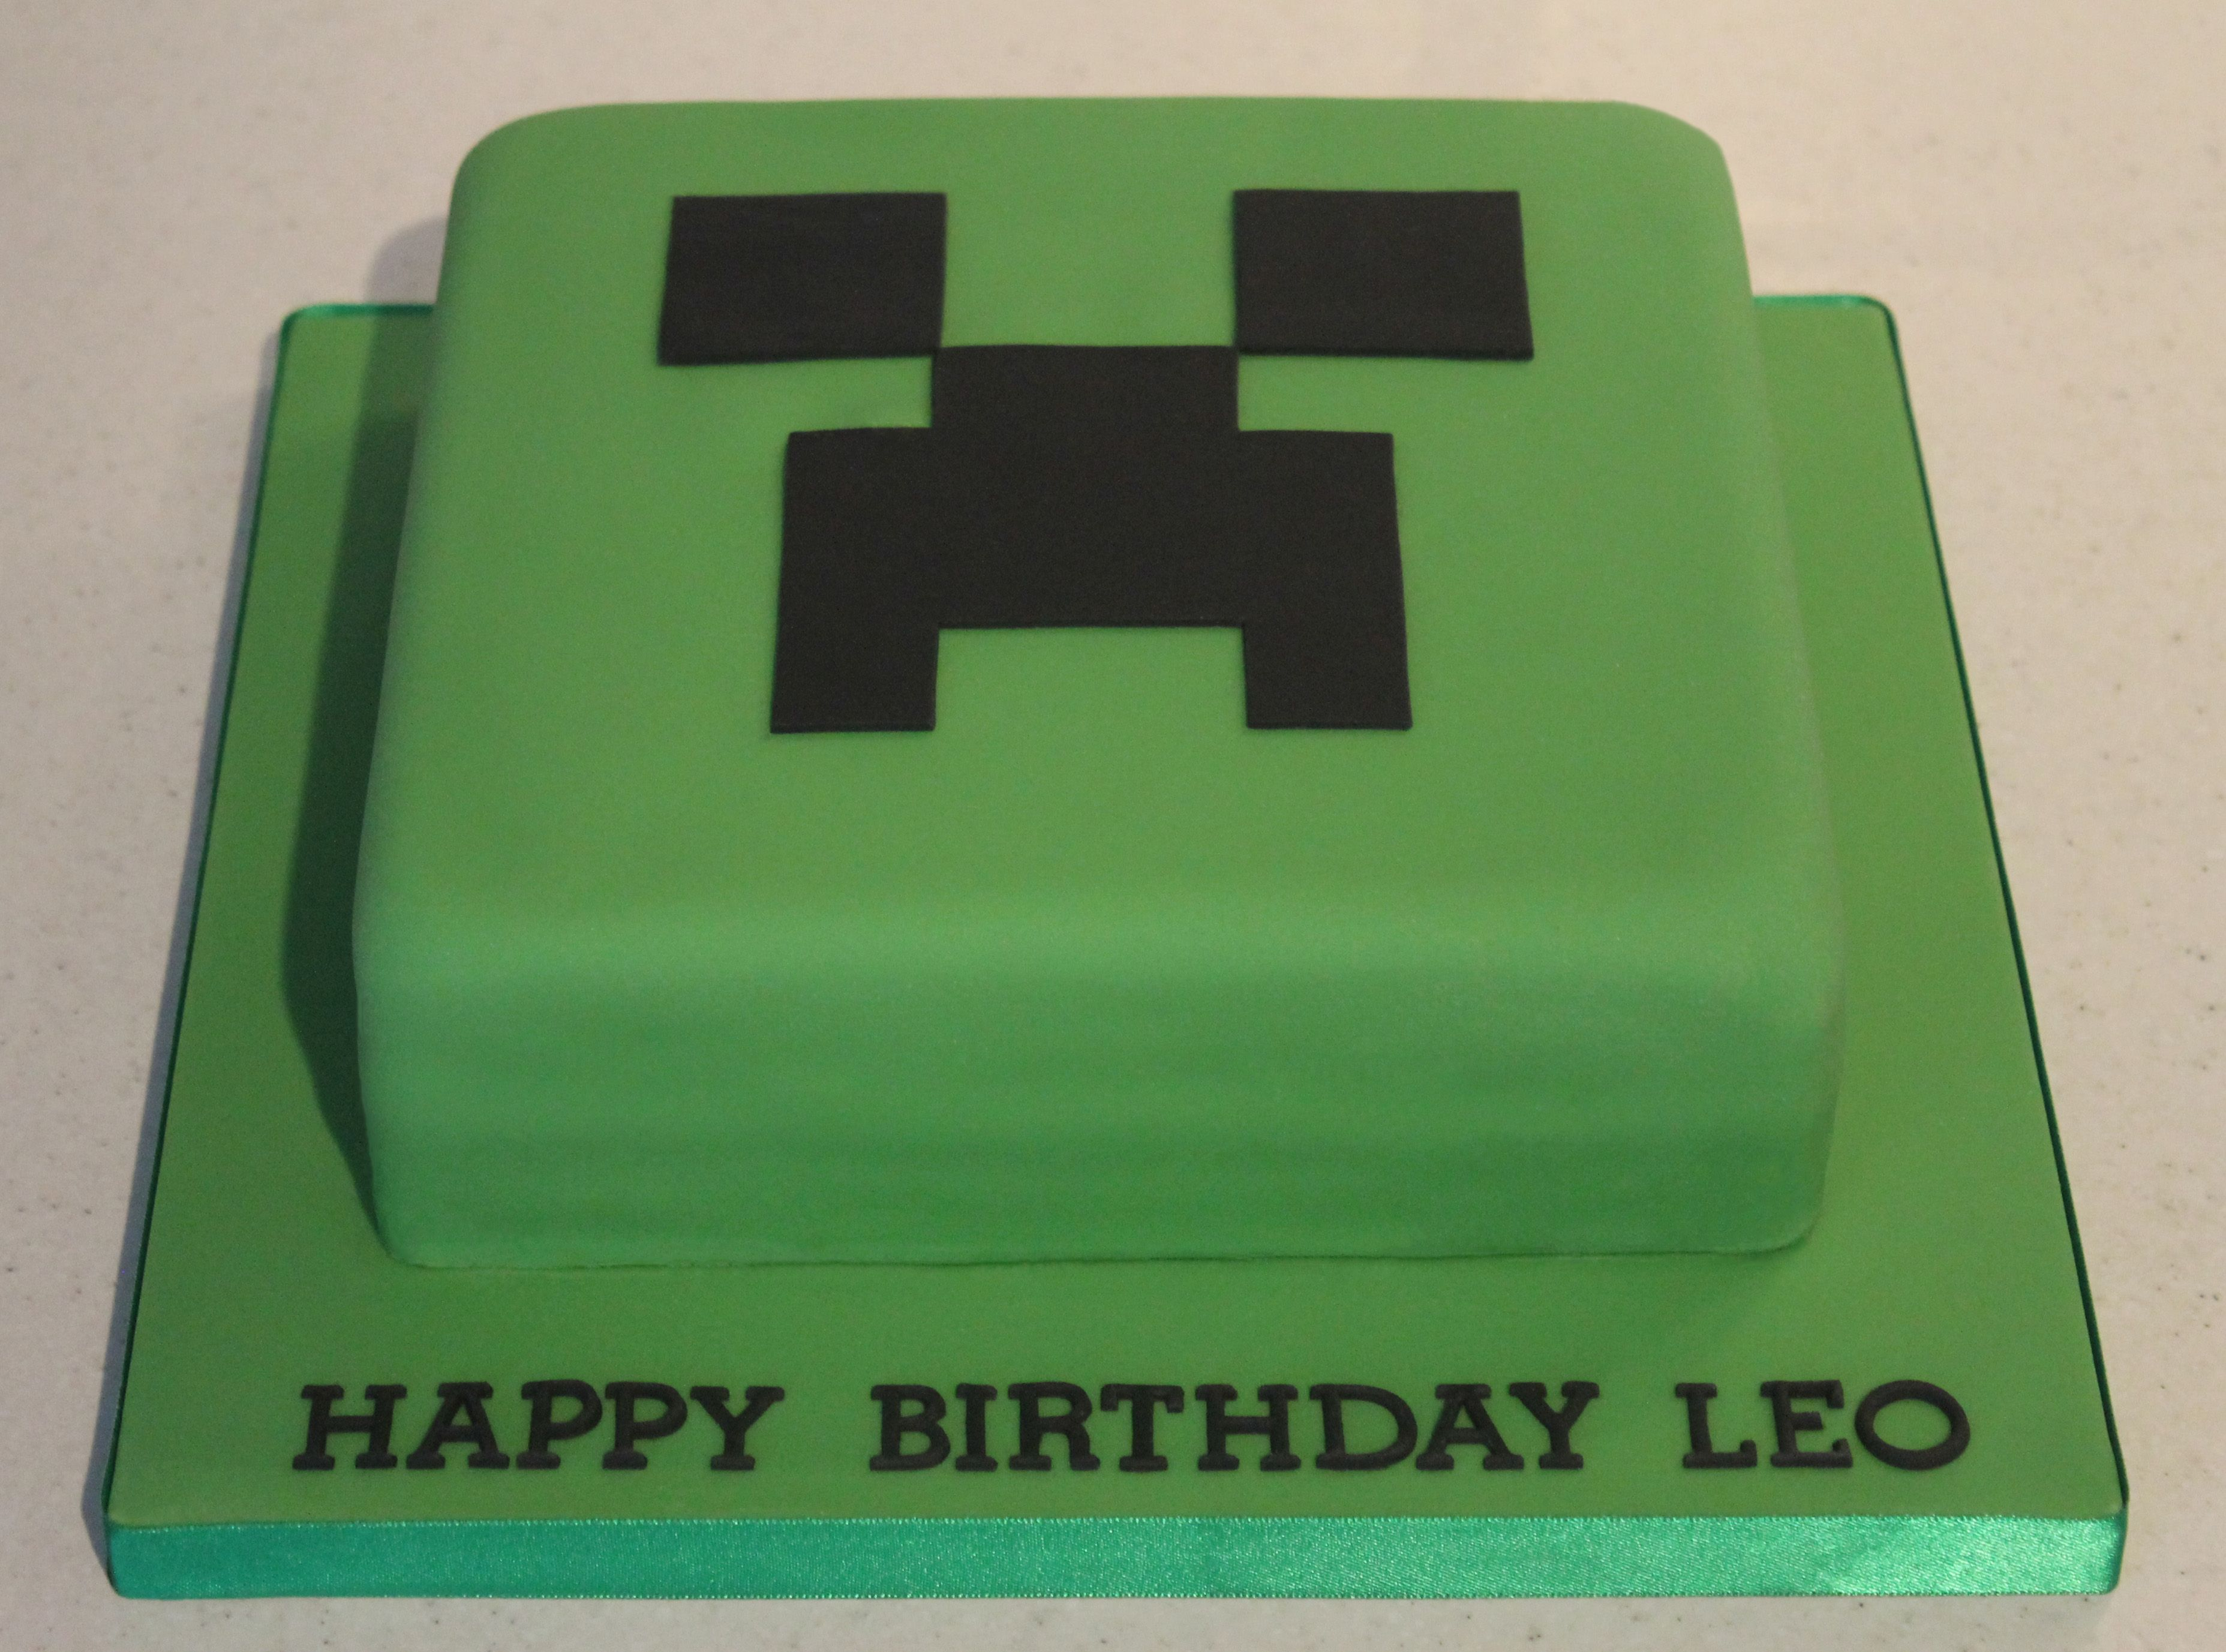 Stupendous Minecraft Creeper Cake With Images Happy Birthday Leo Creeper Personalised Birthday Cards Paralily Jamesorg